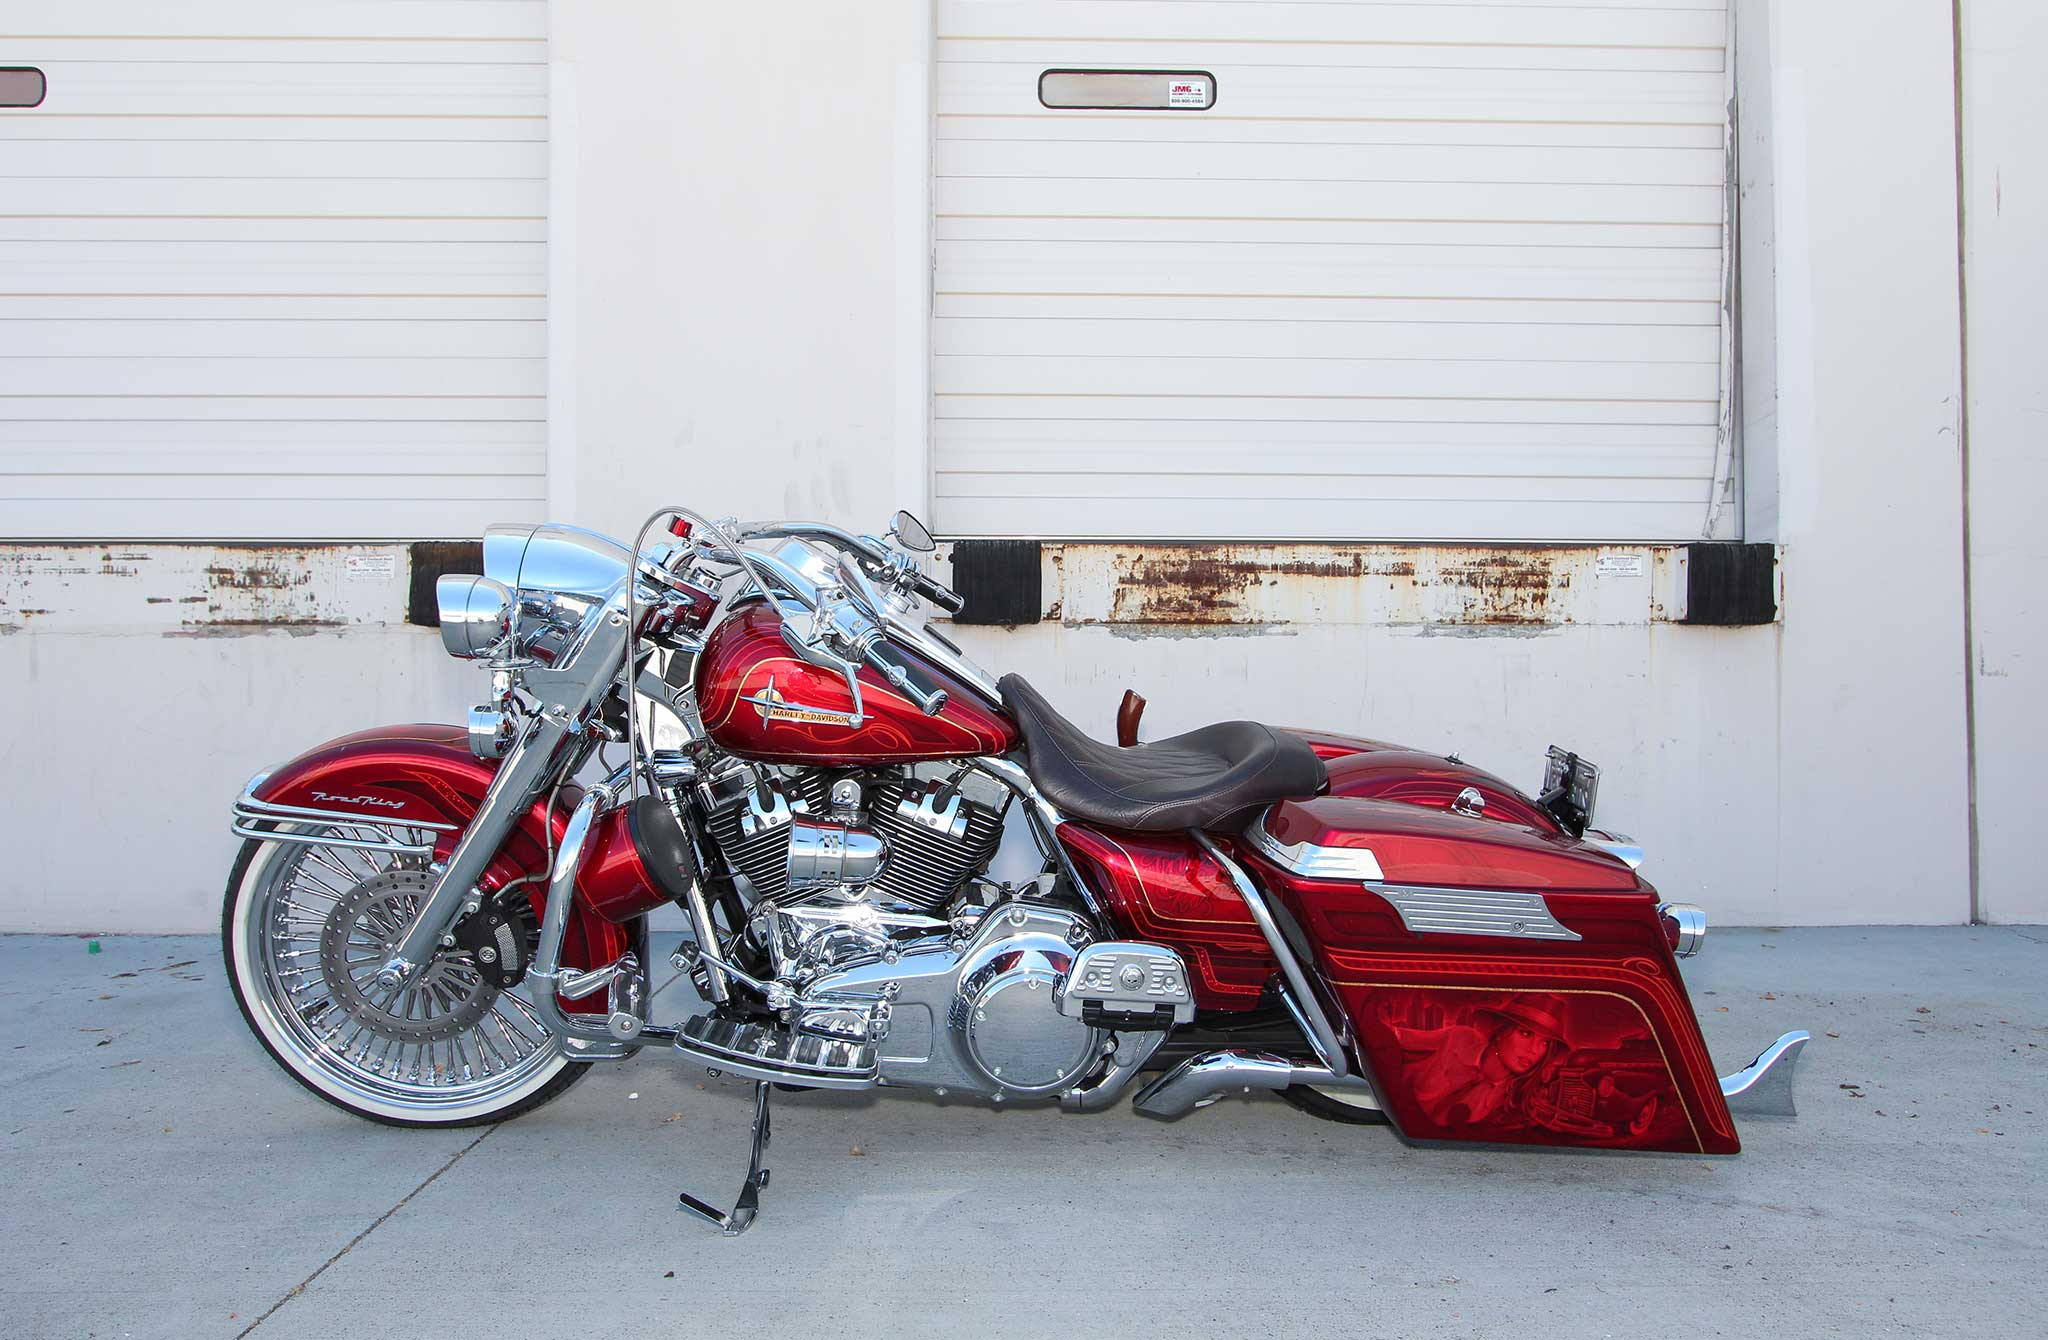 Lowrider Rims And Tires >> 2010 Harley-Davidson Road King - La Pachuca - Lowrider